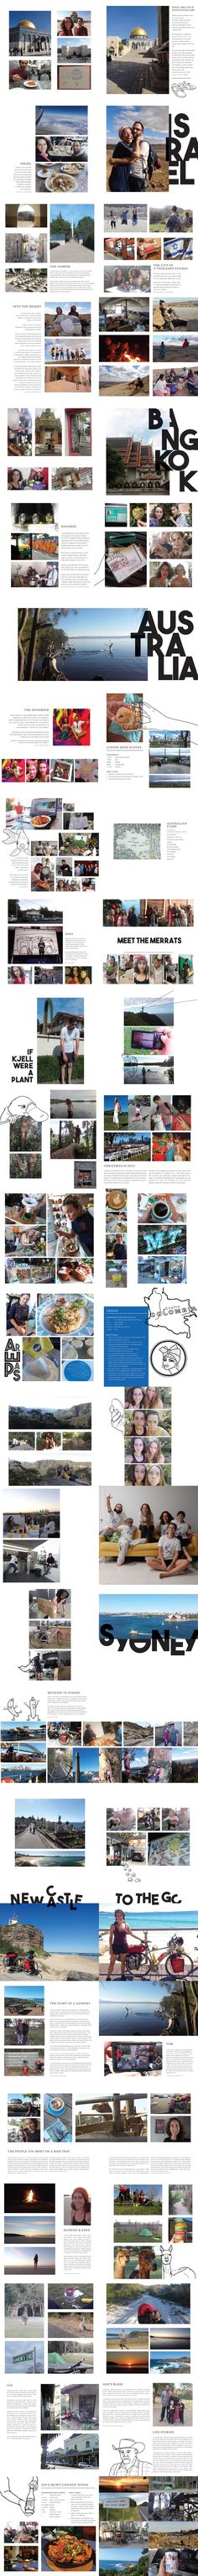 GGraphics Travels 2017 A selection of pages from Gunbritt Genuit's travel book of A collection of travel stories, recipes and pictures of Israel, Thailand and Australia. Freelance Graphic Design, Israel, Thailand, Australia, Books, Recipes, Pictures, Collection, Photos